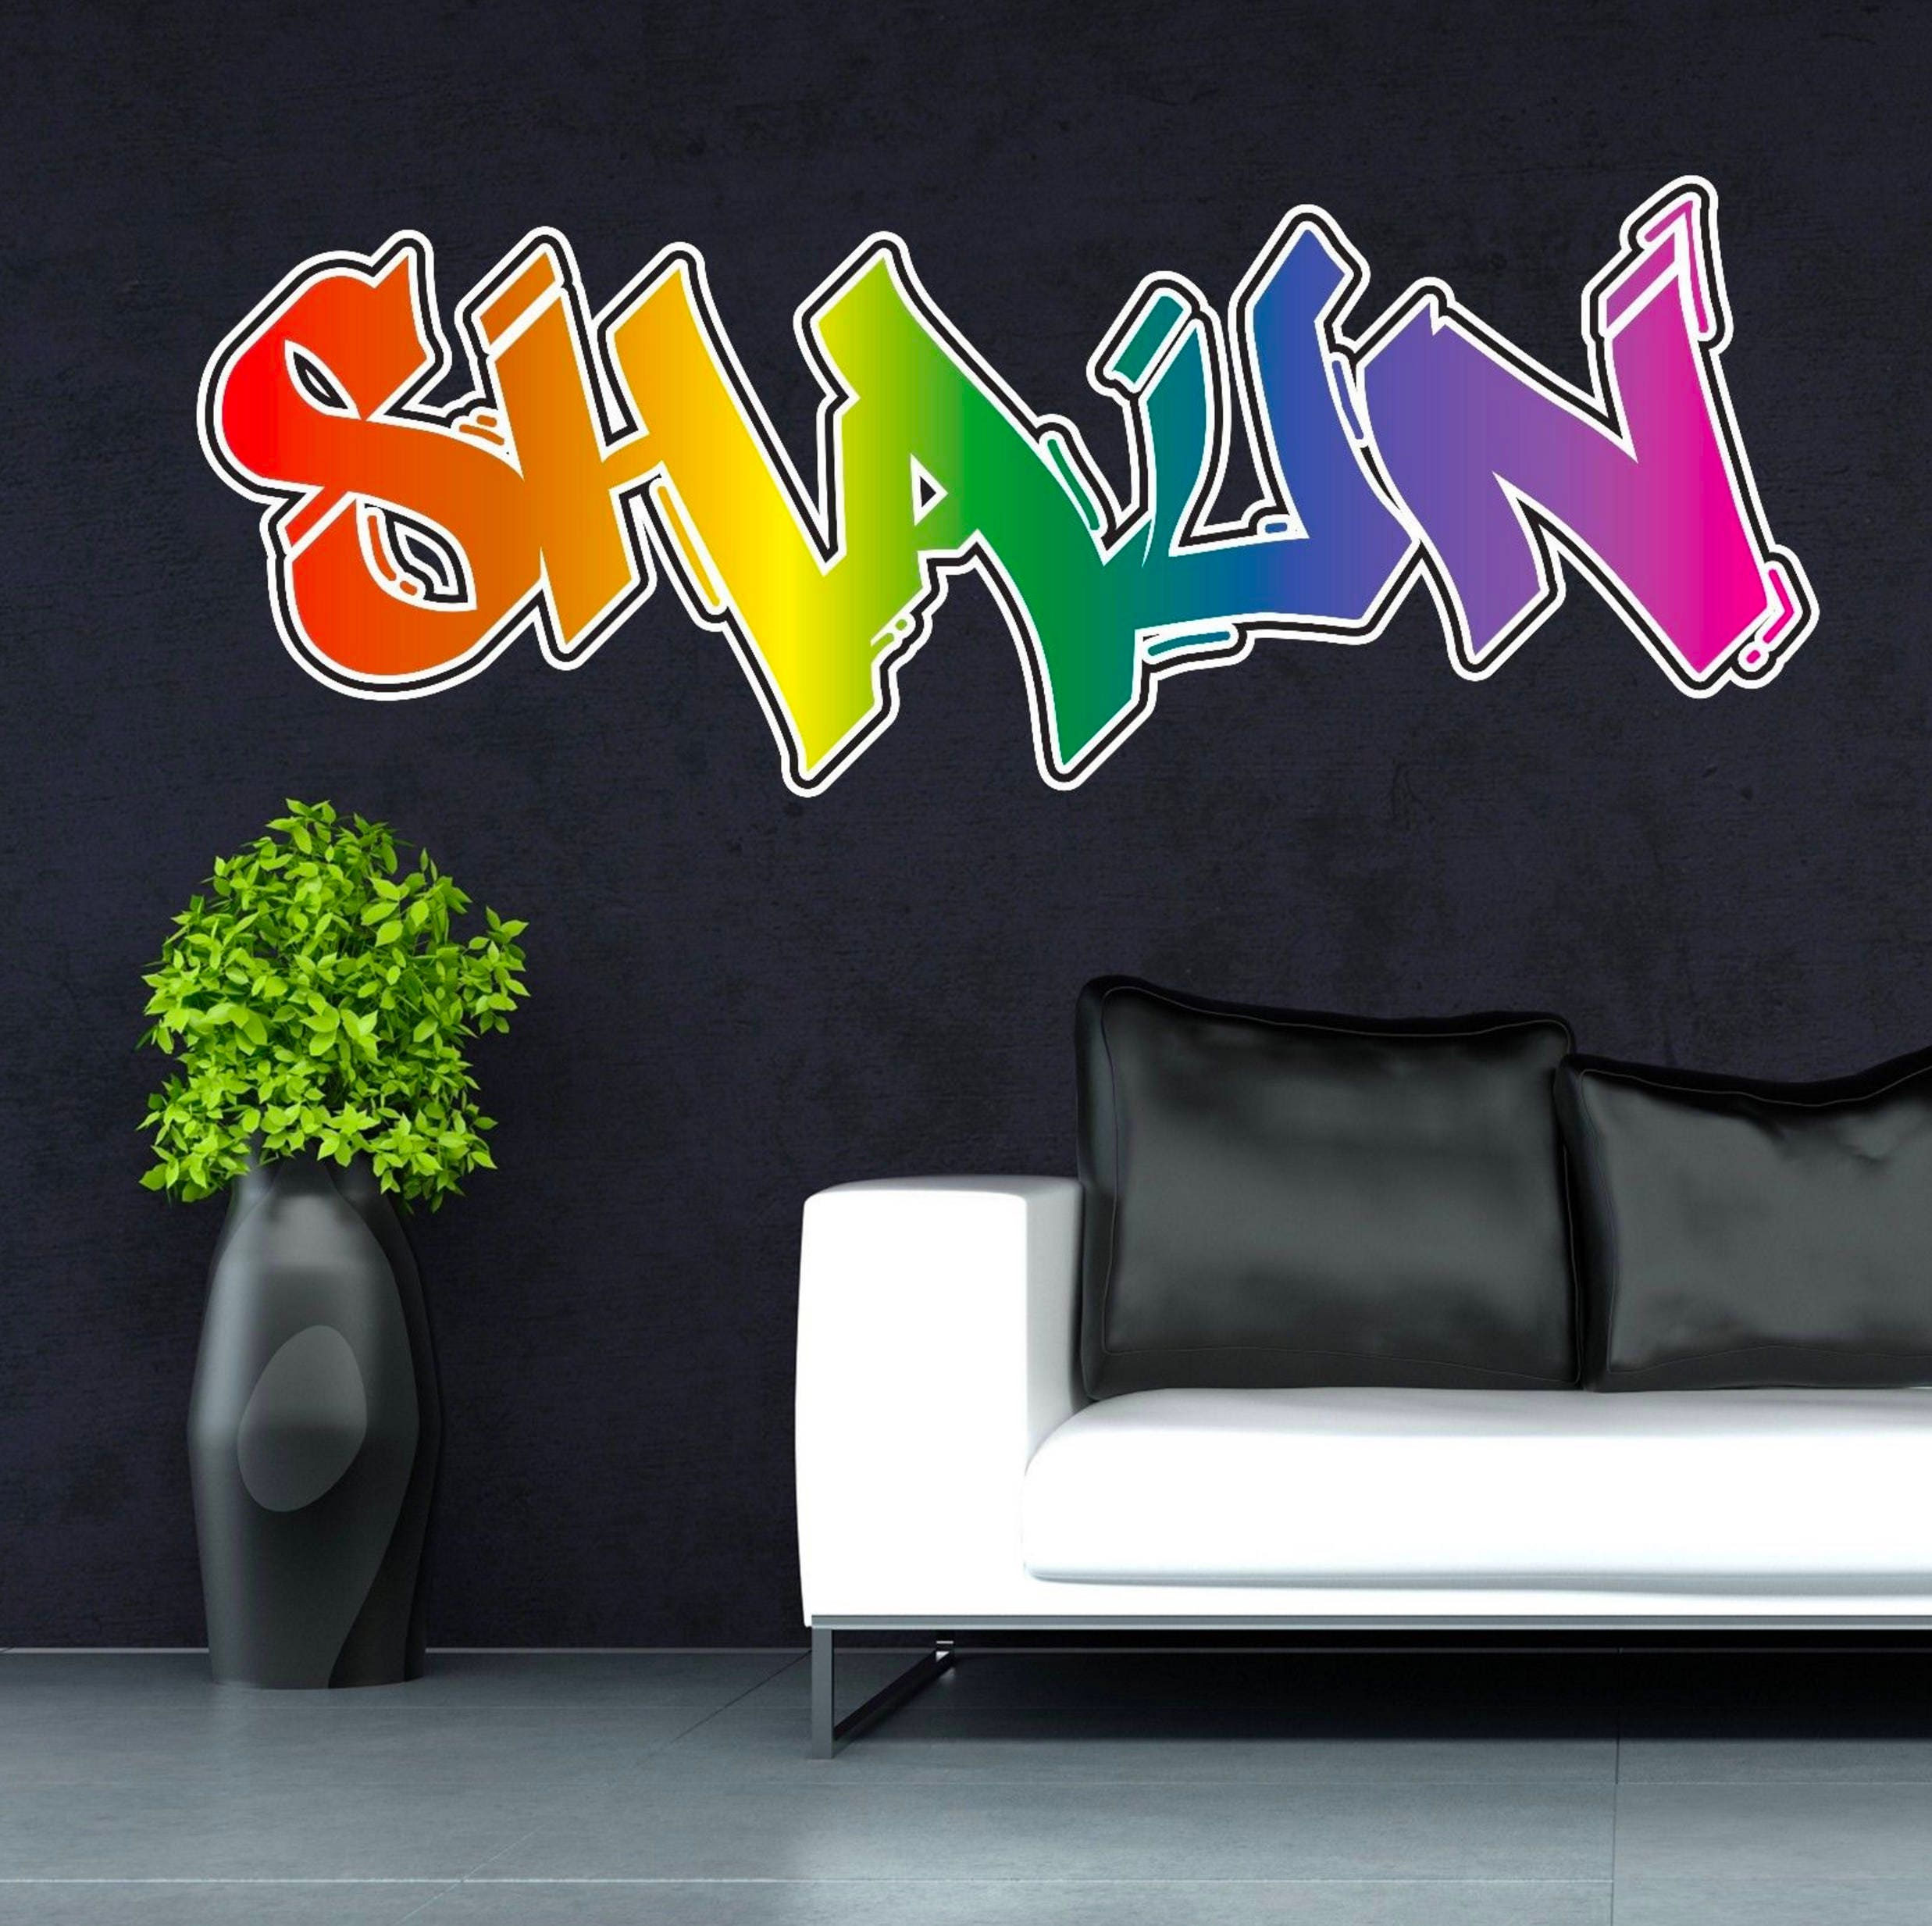 Personalised custom graffiti name wall art stickers decor for zoom amipublicfo Gallery